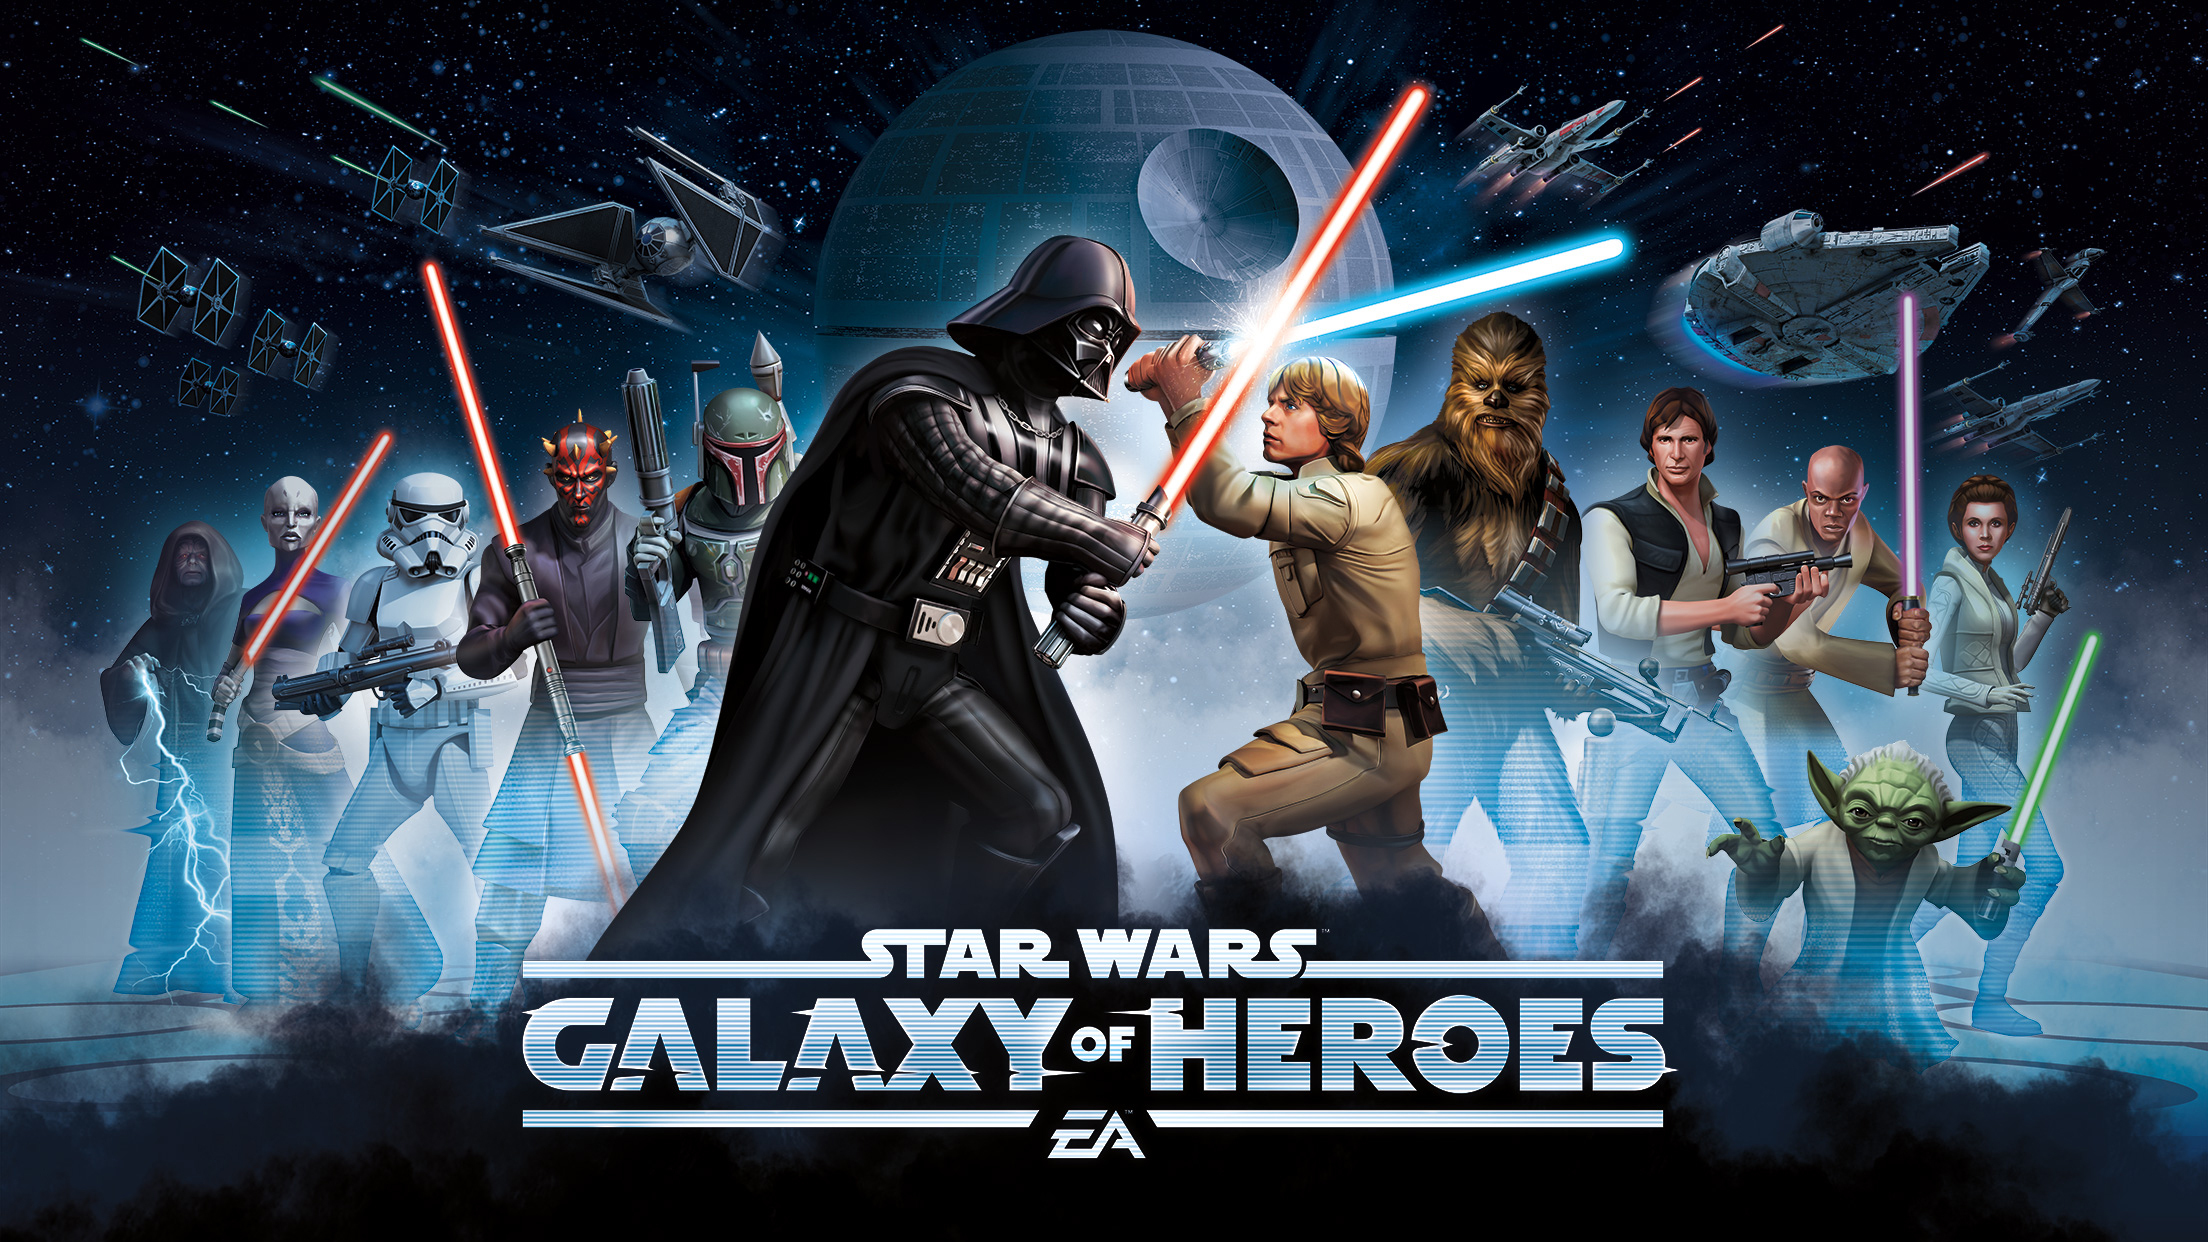 Get ready to explore 'Star Wars: Galaxy of Heroes' on mobile